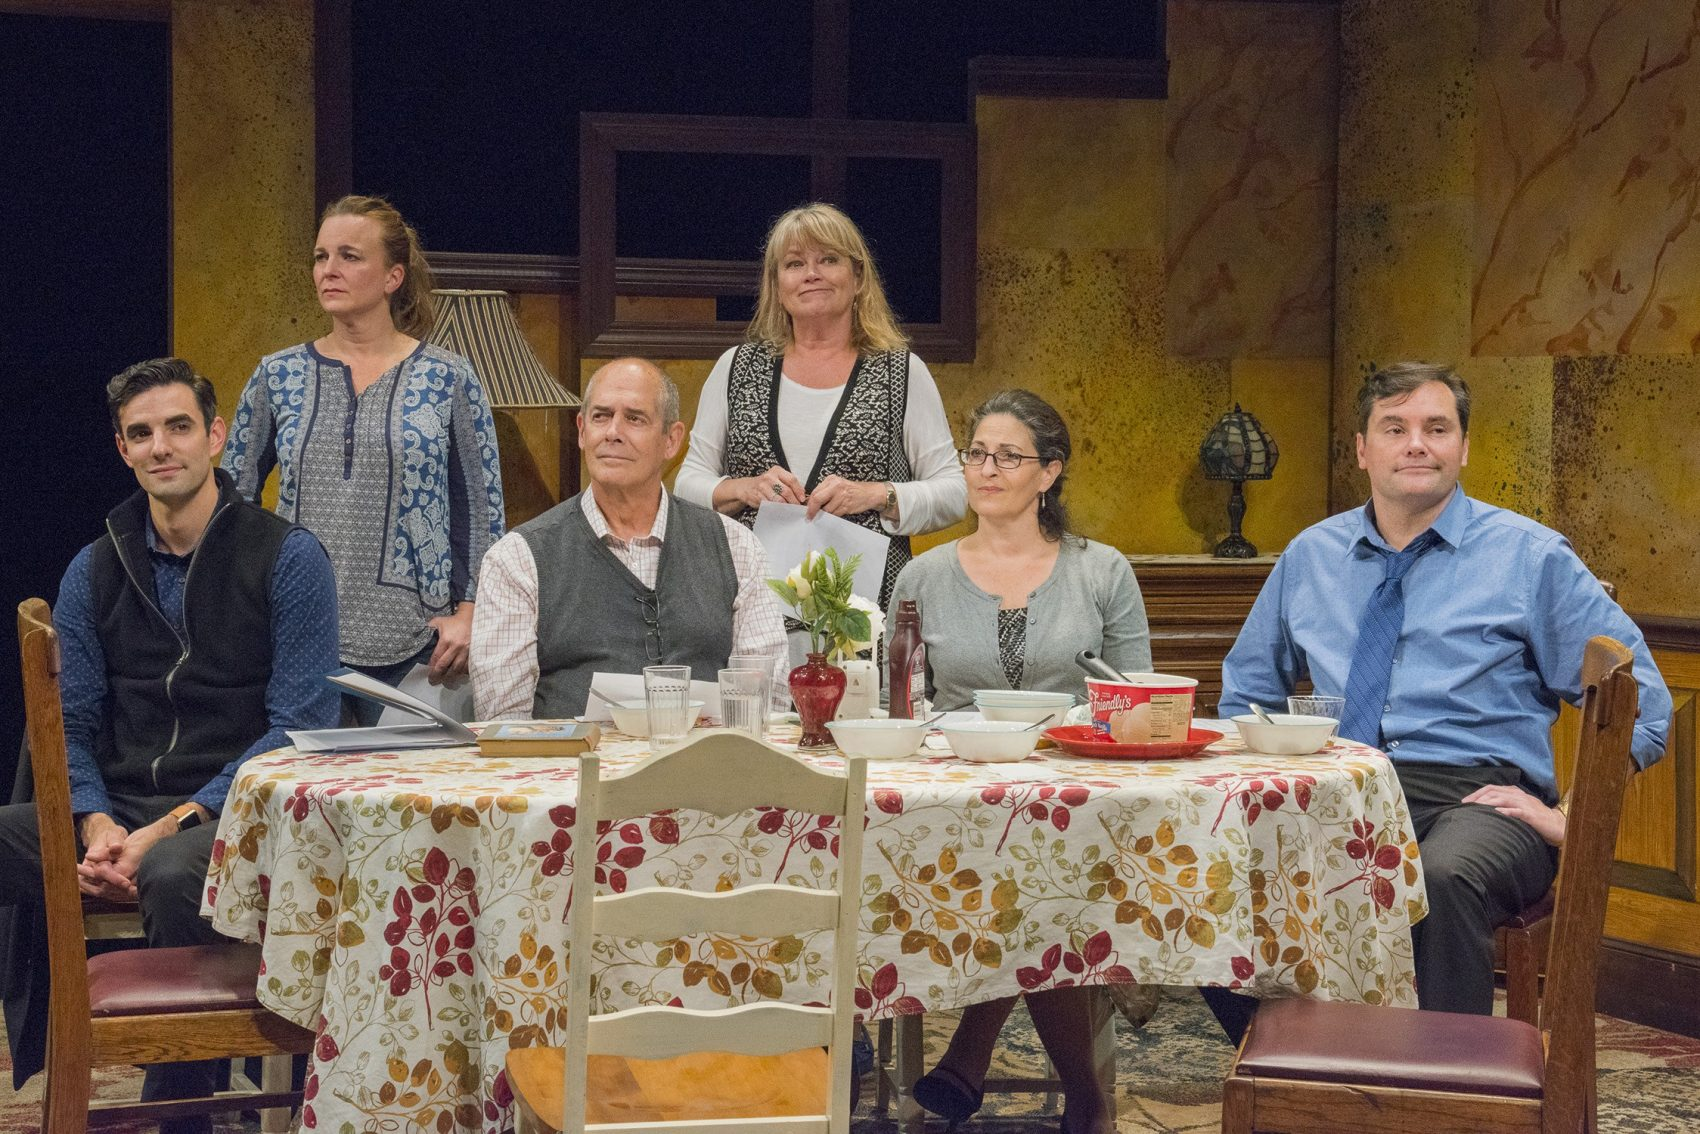 """Left to right: Paul Melendy, Laura Latreille, Joel Colodner, Karen MacDonald, Sarah Newhouse and Bill Mootos in the New Repertory Theatre's production of """"Regular Singing."""" (Courtesy Andrew Brilliant / Brilliant Pictures)"""